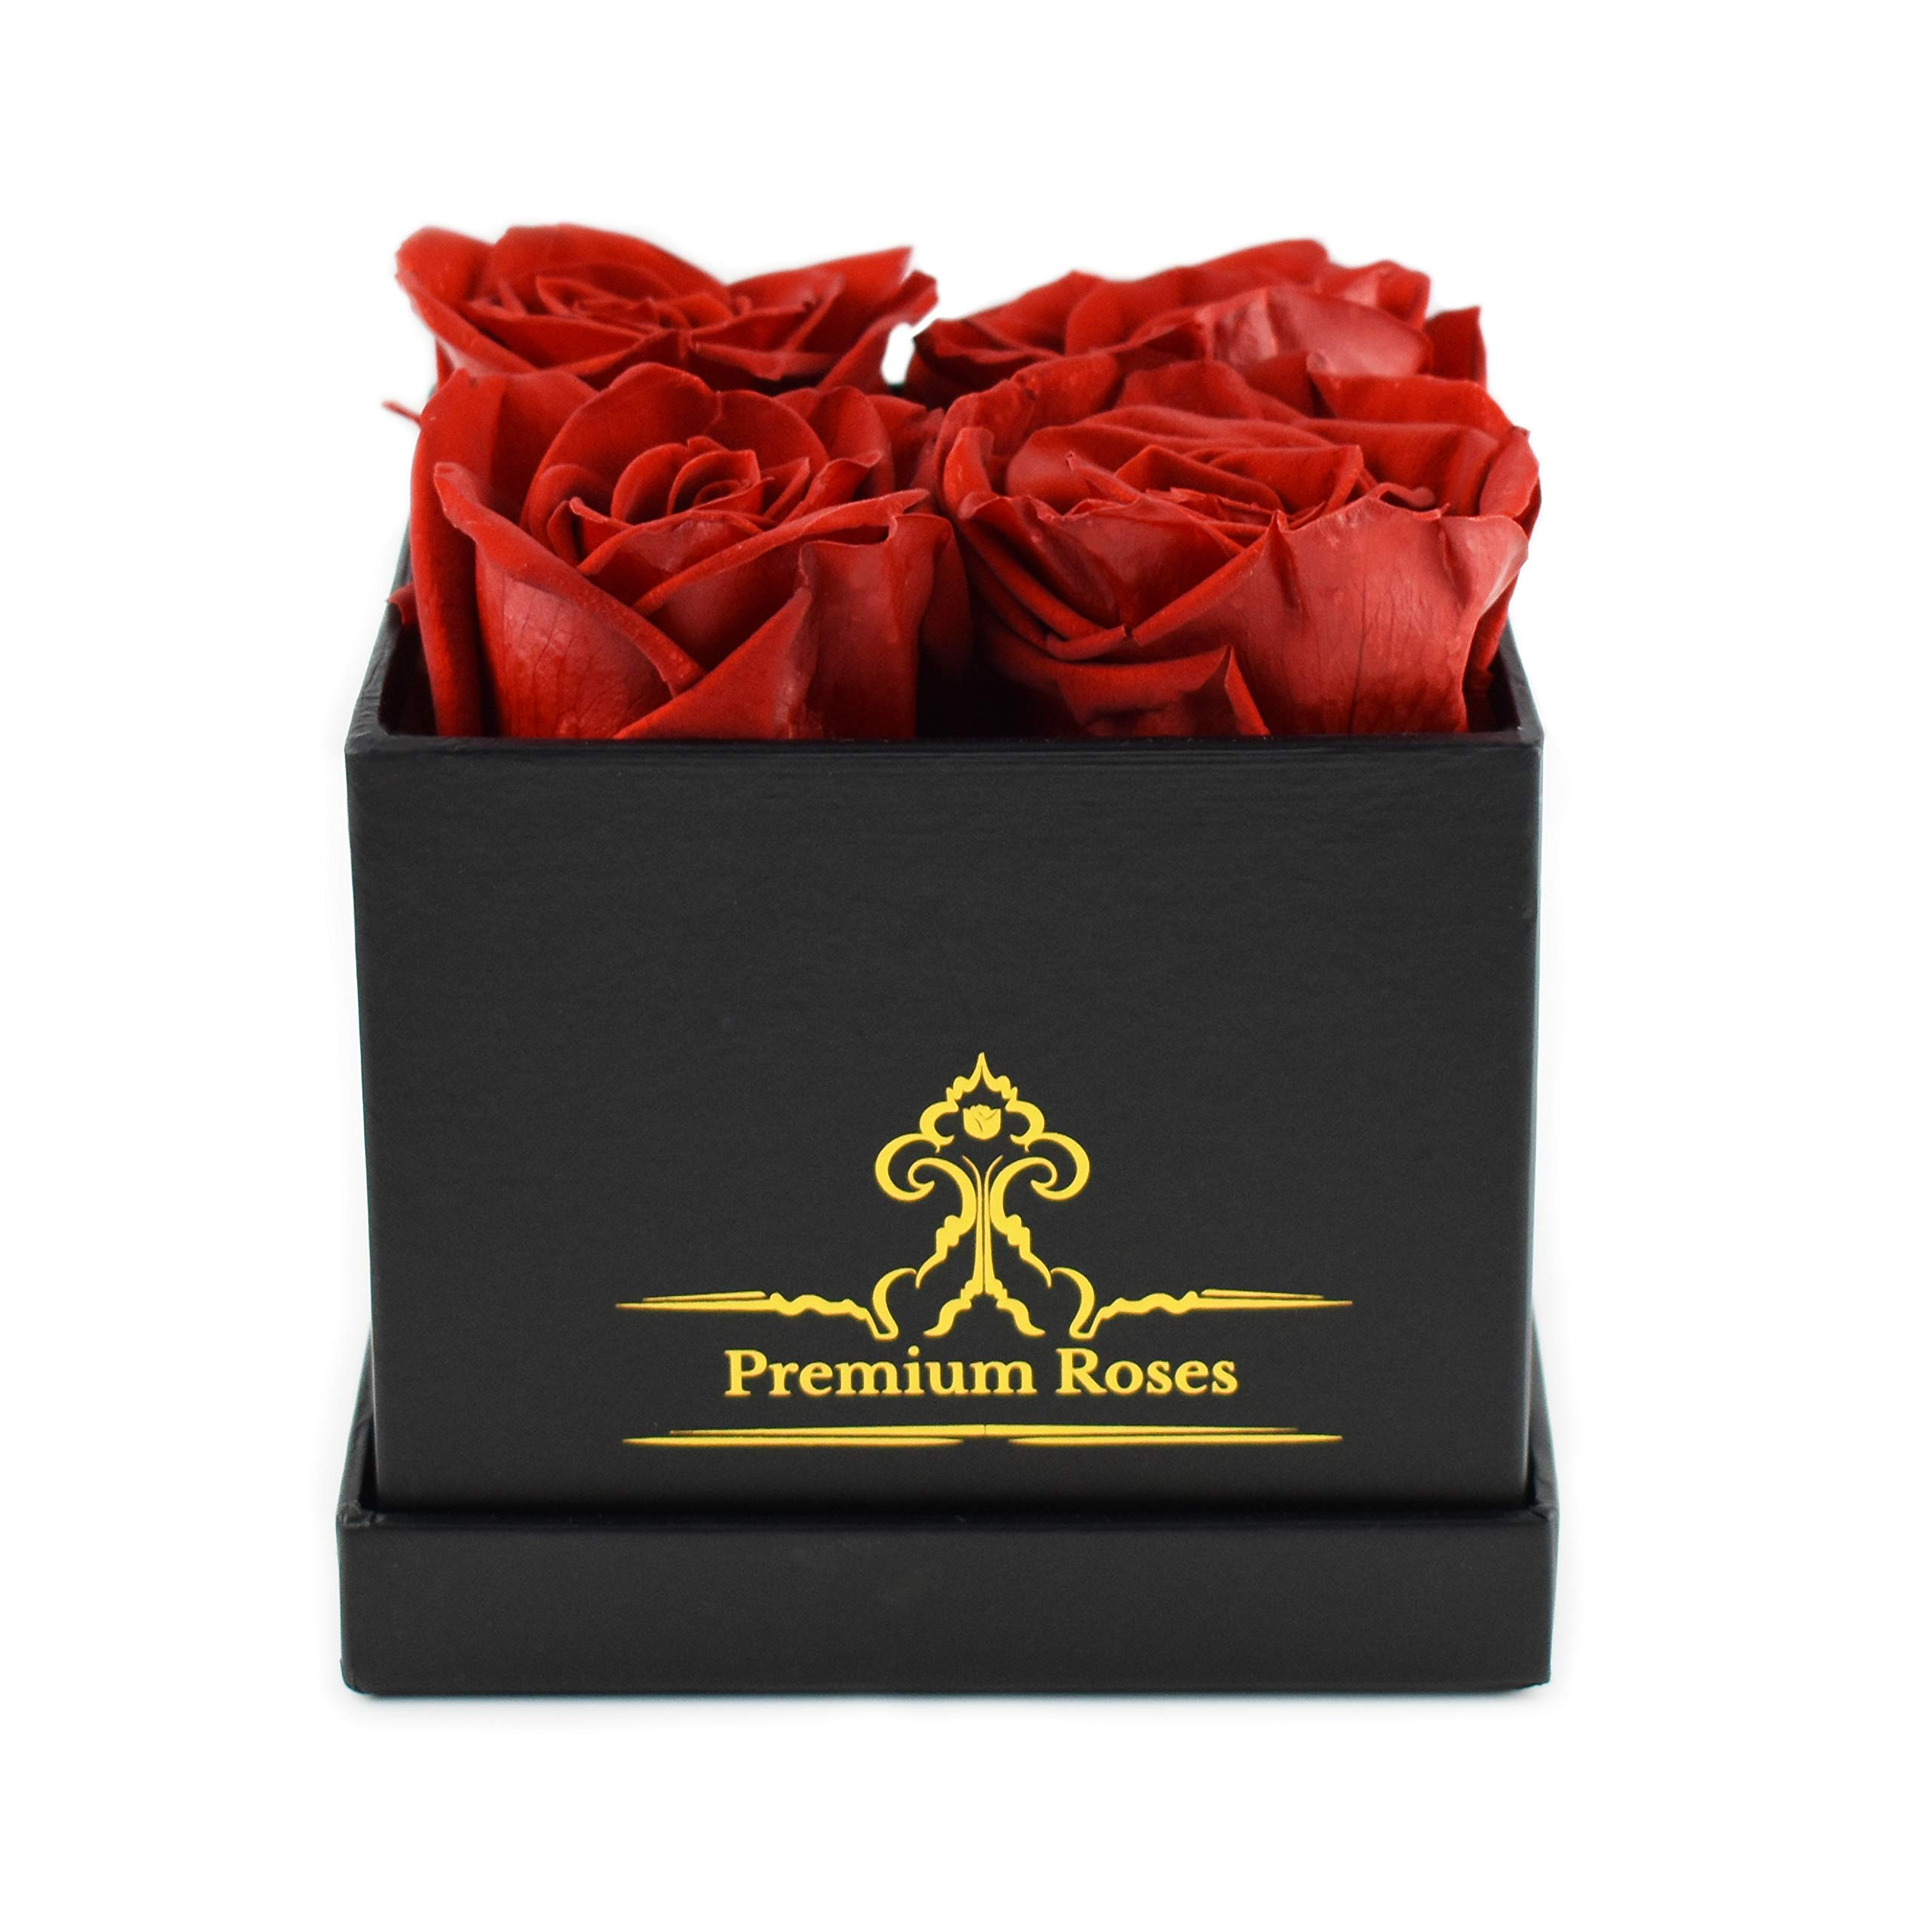 Premium Roses | Model Posh | Real Roses That Last 365 Days | Roses in a Box| Fresh Flowers (Black Box, Small) by Premium Roses (Image #3)